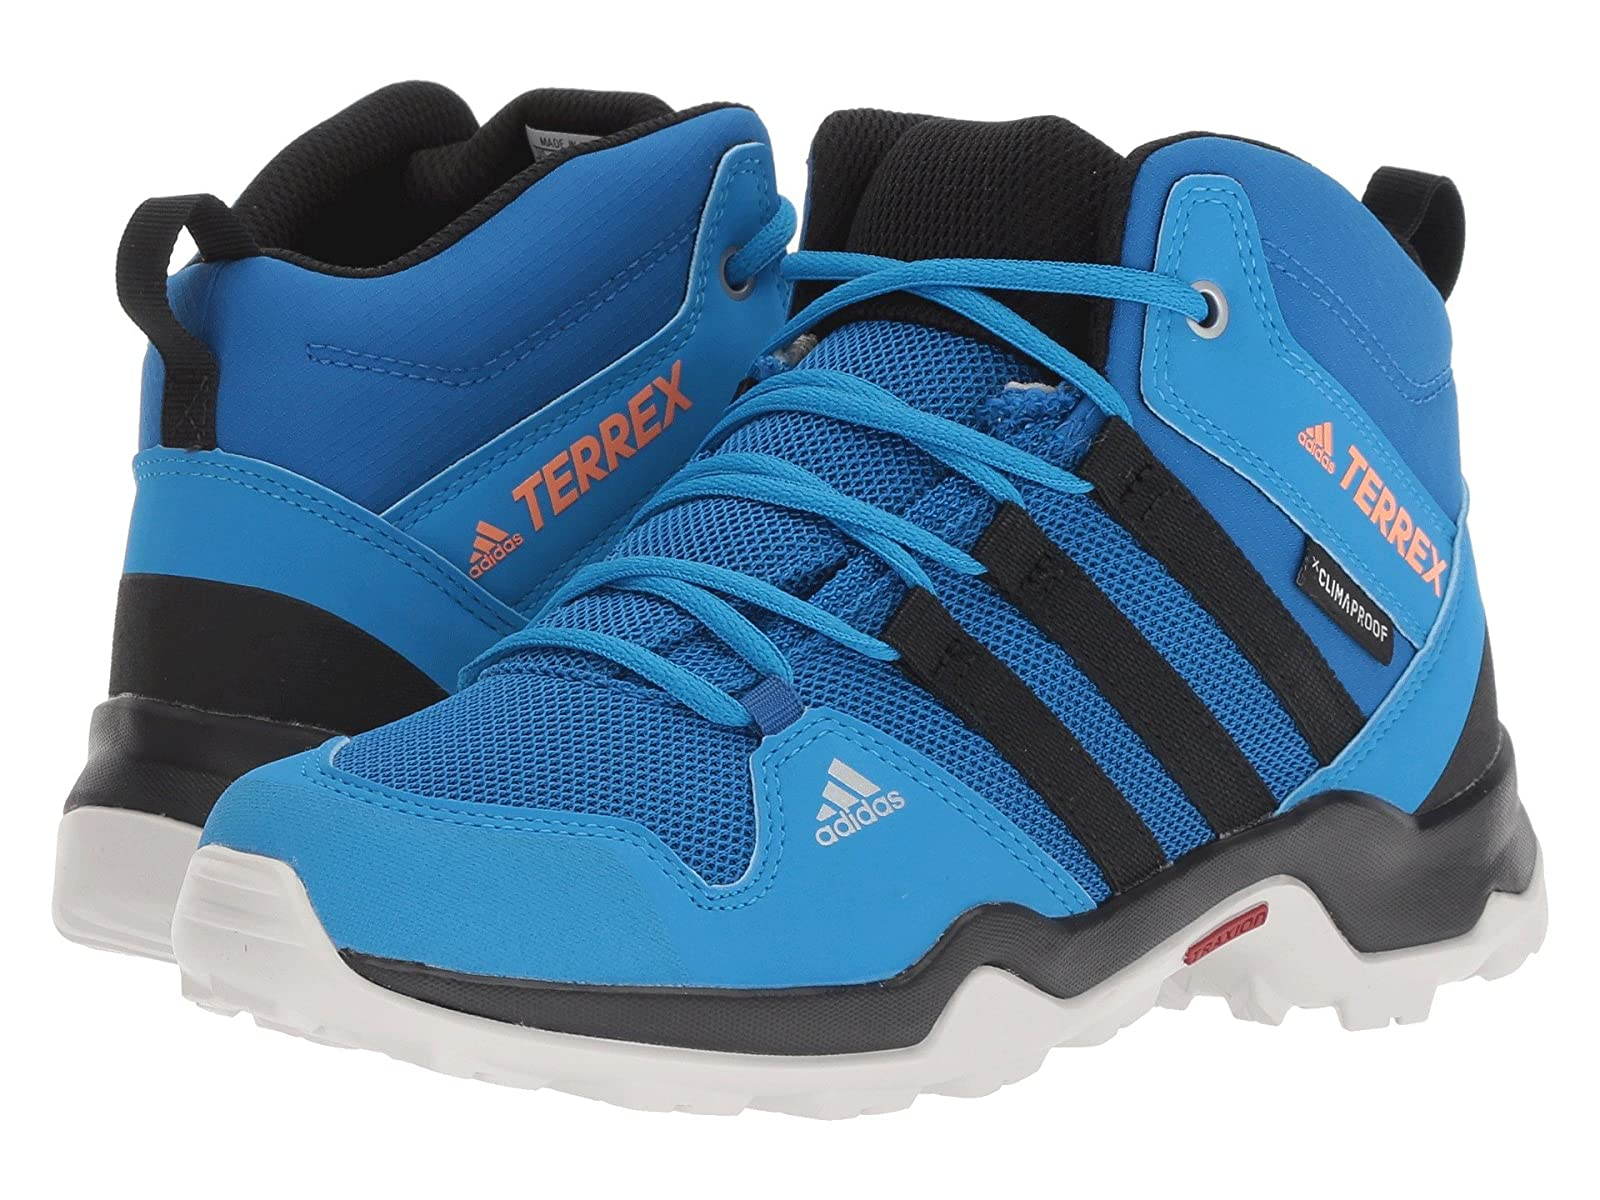 adidas Outdoor Kids Terrex AX2R Mid CP (Little Kid/Big Kid)Selling fashionable and eye-catching shoes